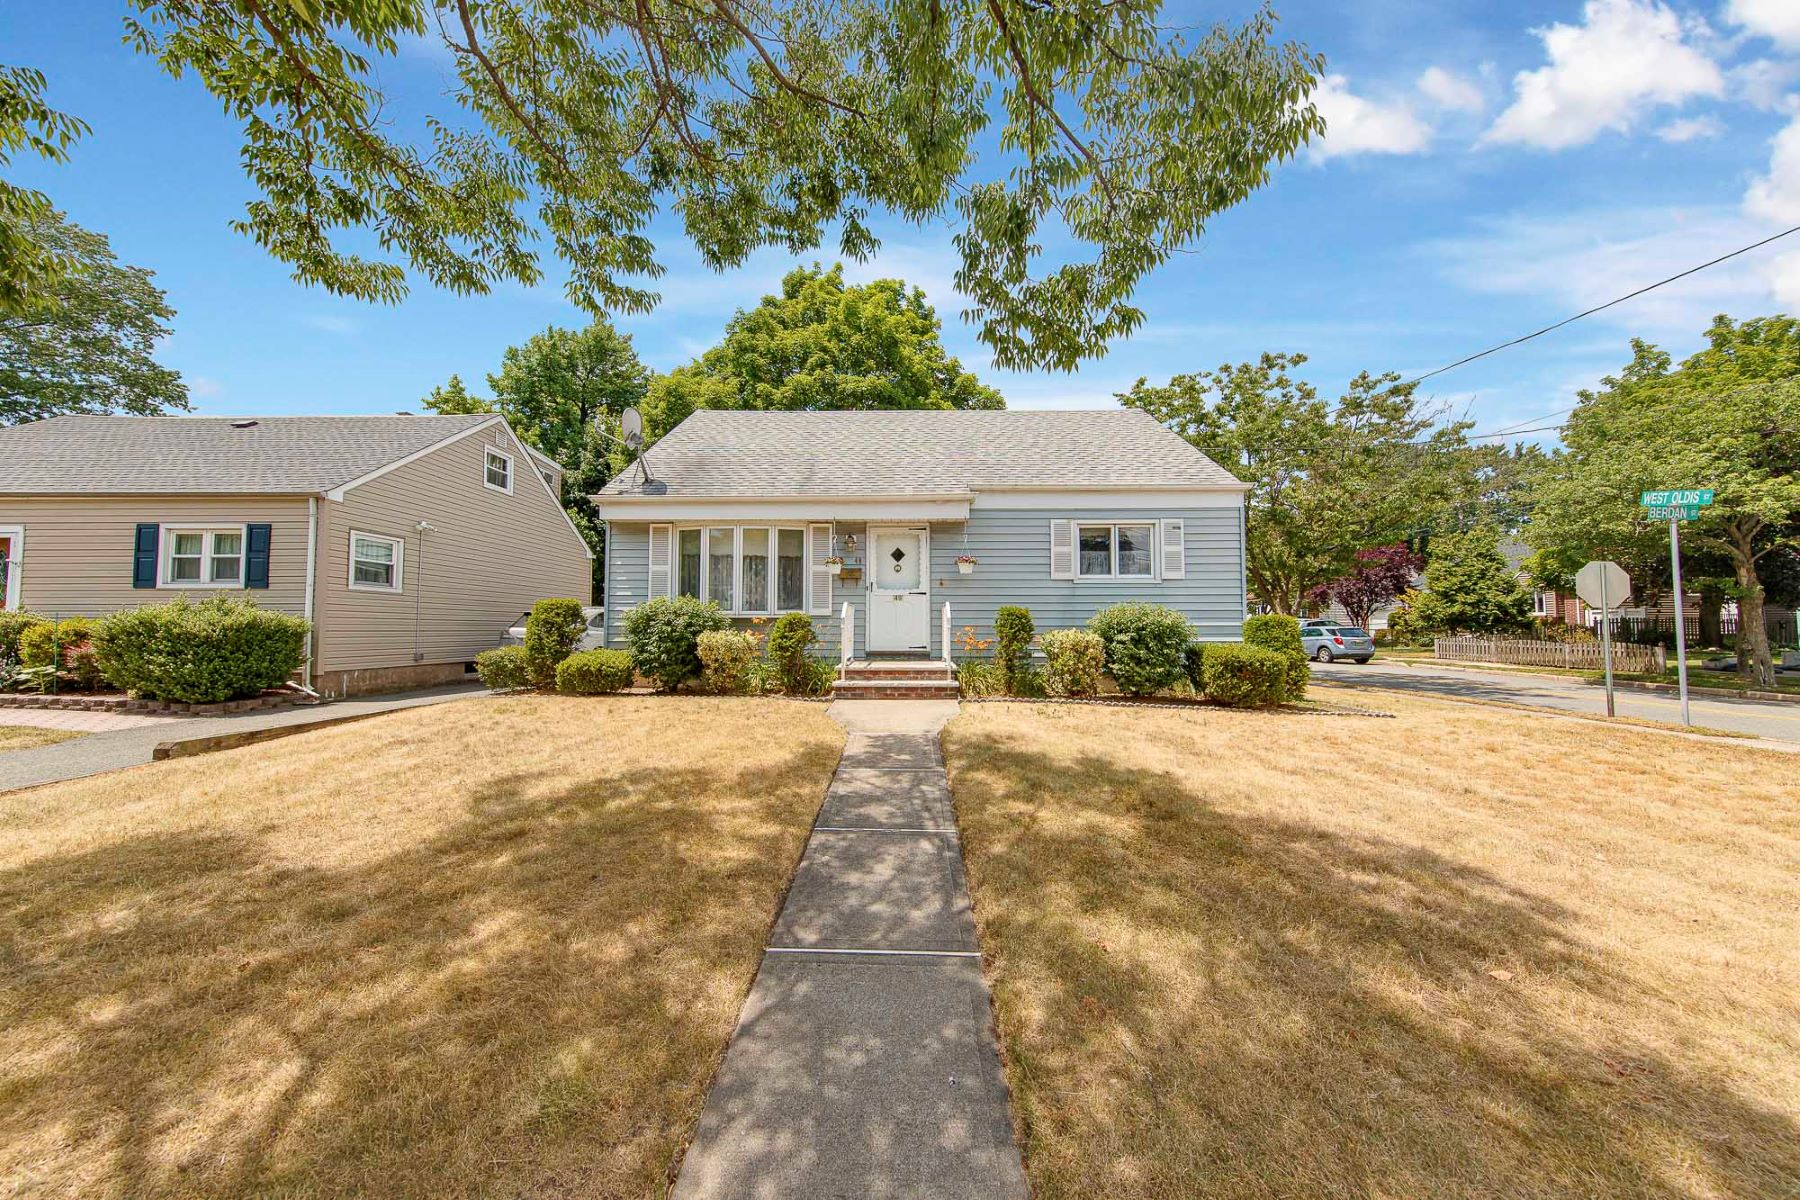 Single Family Homes for Sale at Great Opportunity! 49 Berdan St, Rochelle Park, New Jersey 07662 United States